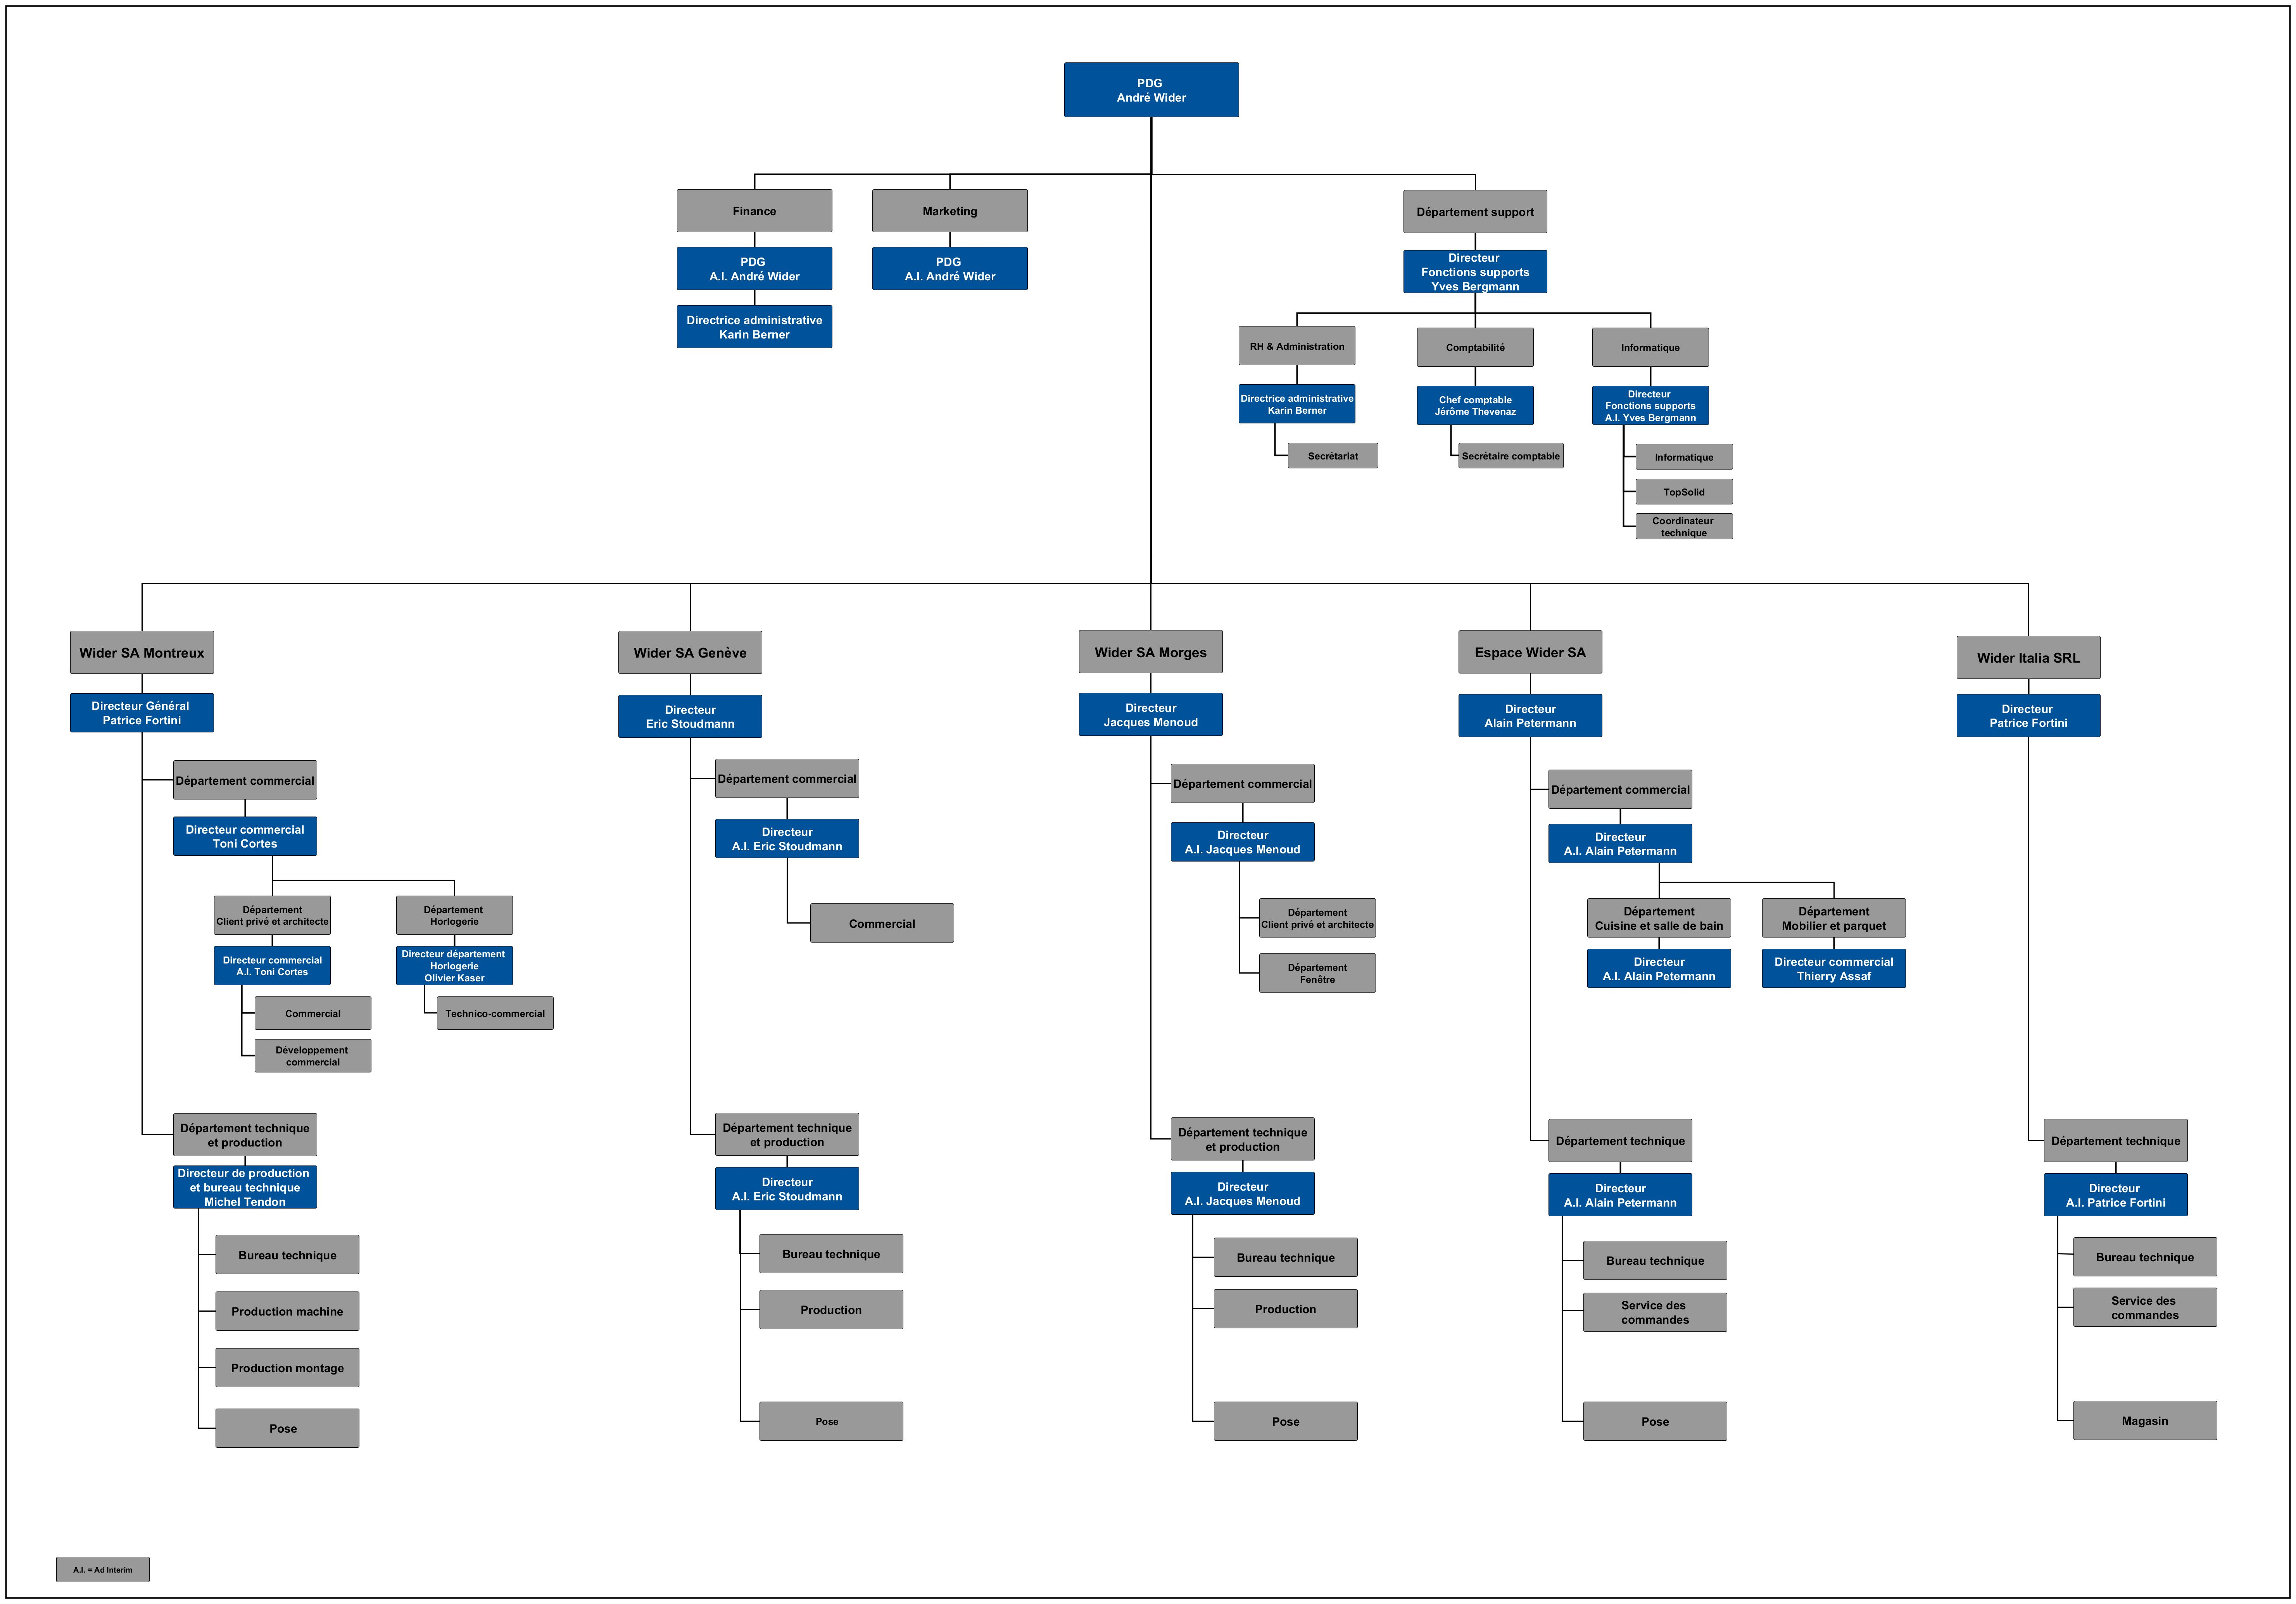 Organisation Chart of Wider Companies